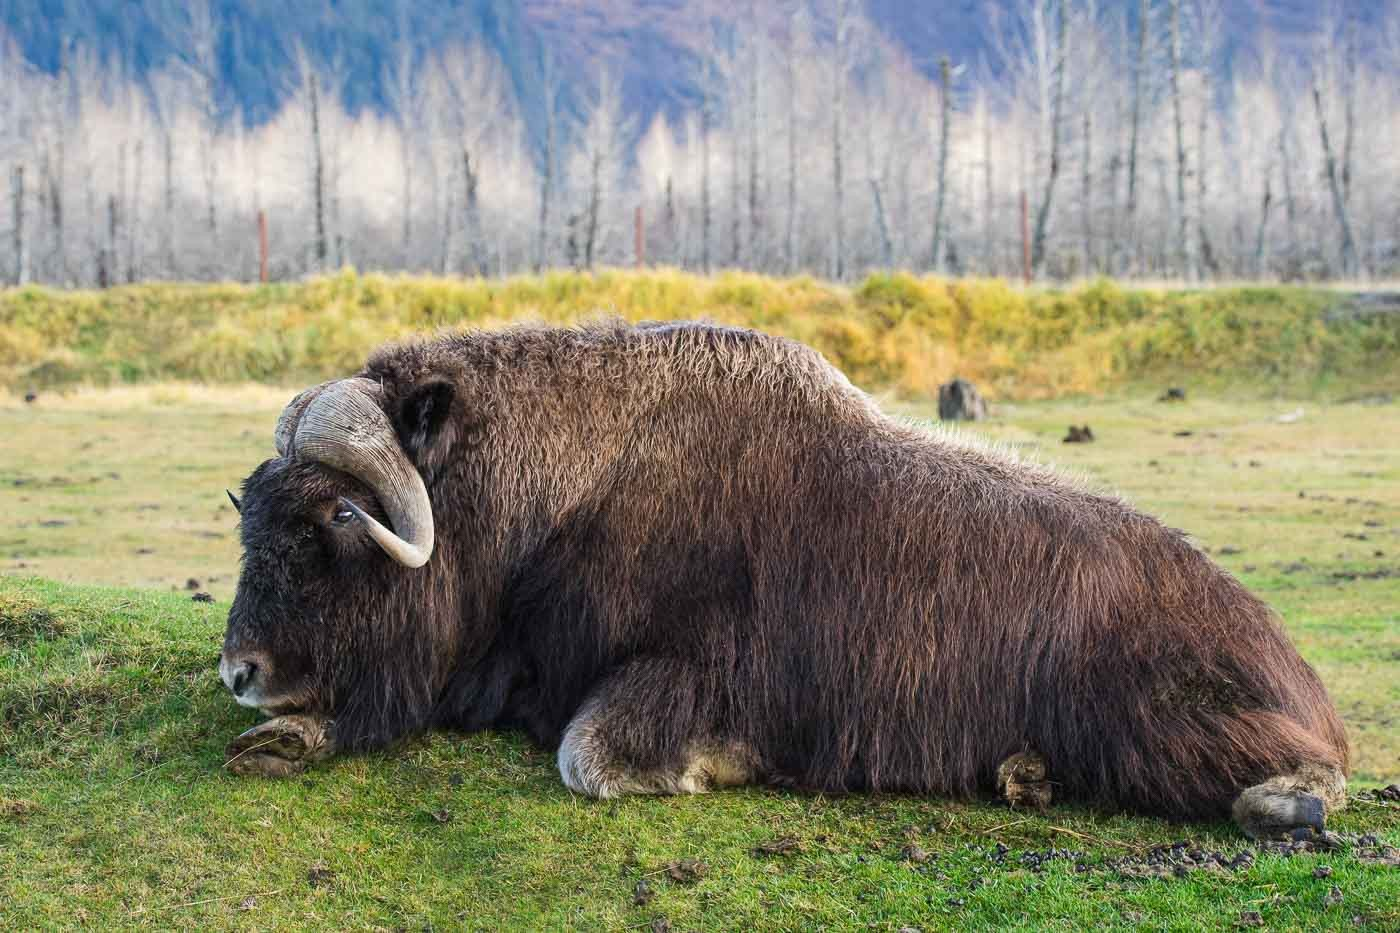 Musk Ox in Alaska with the Tamron 150-600mm f/5-6.3